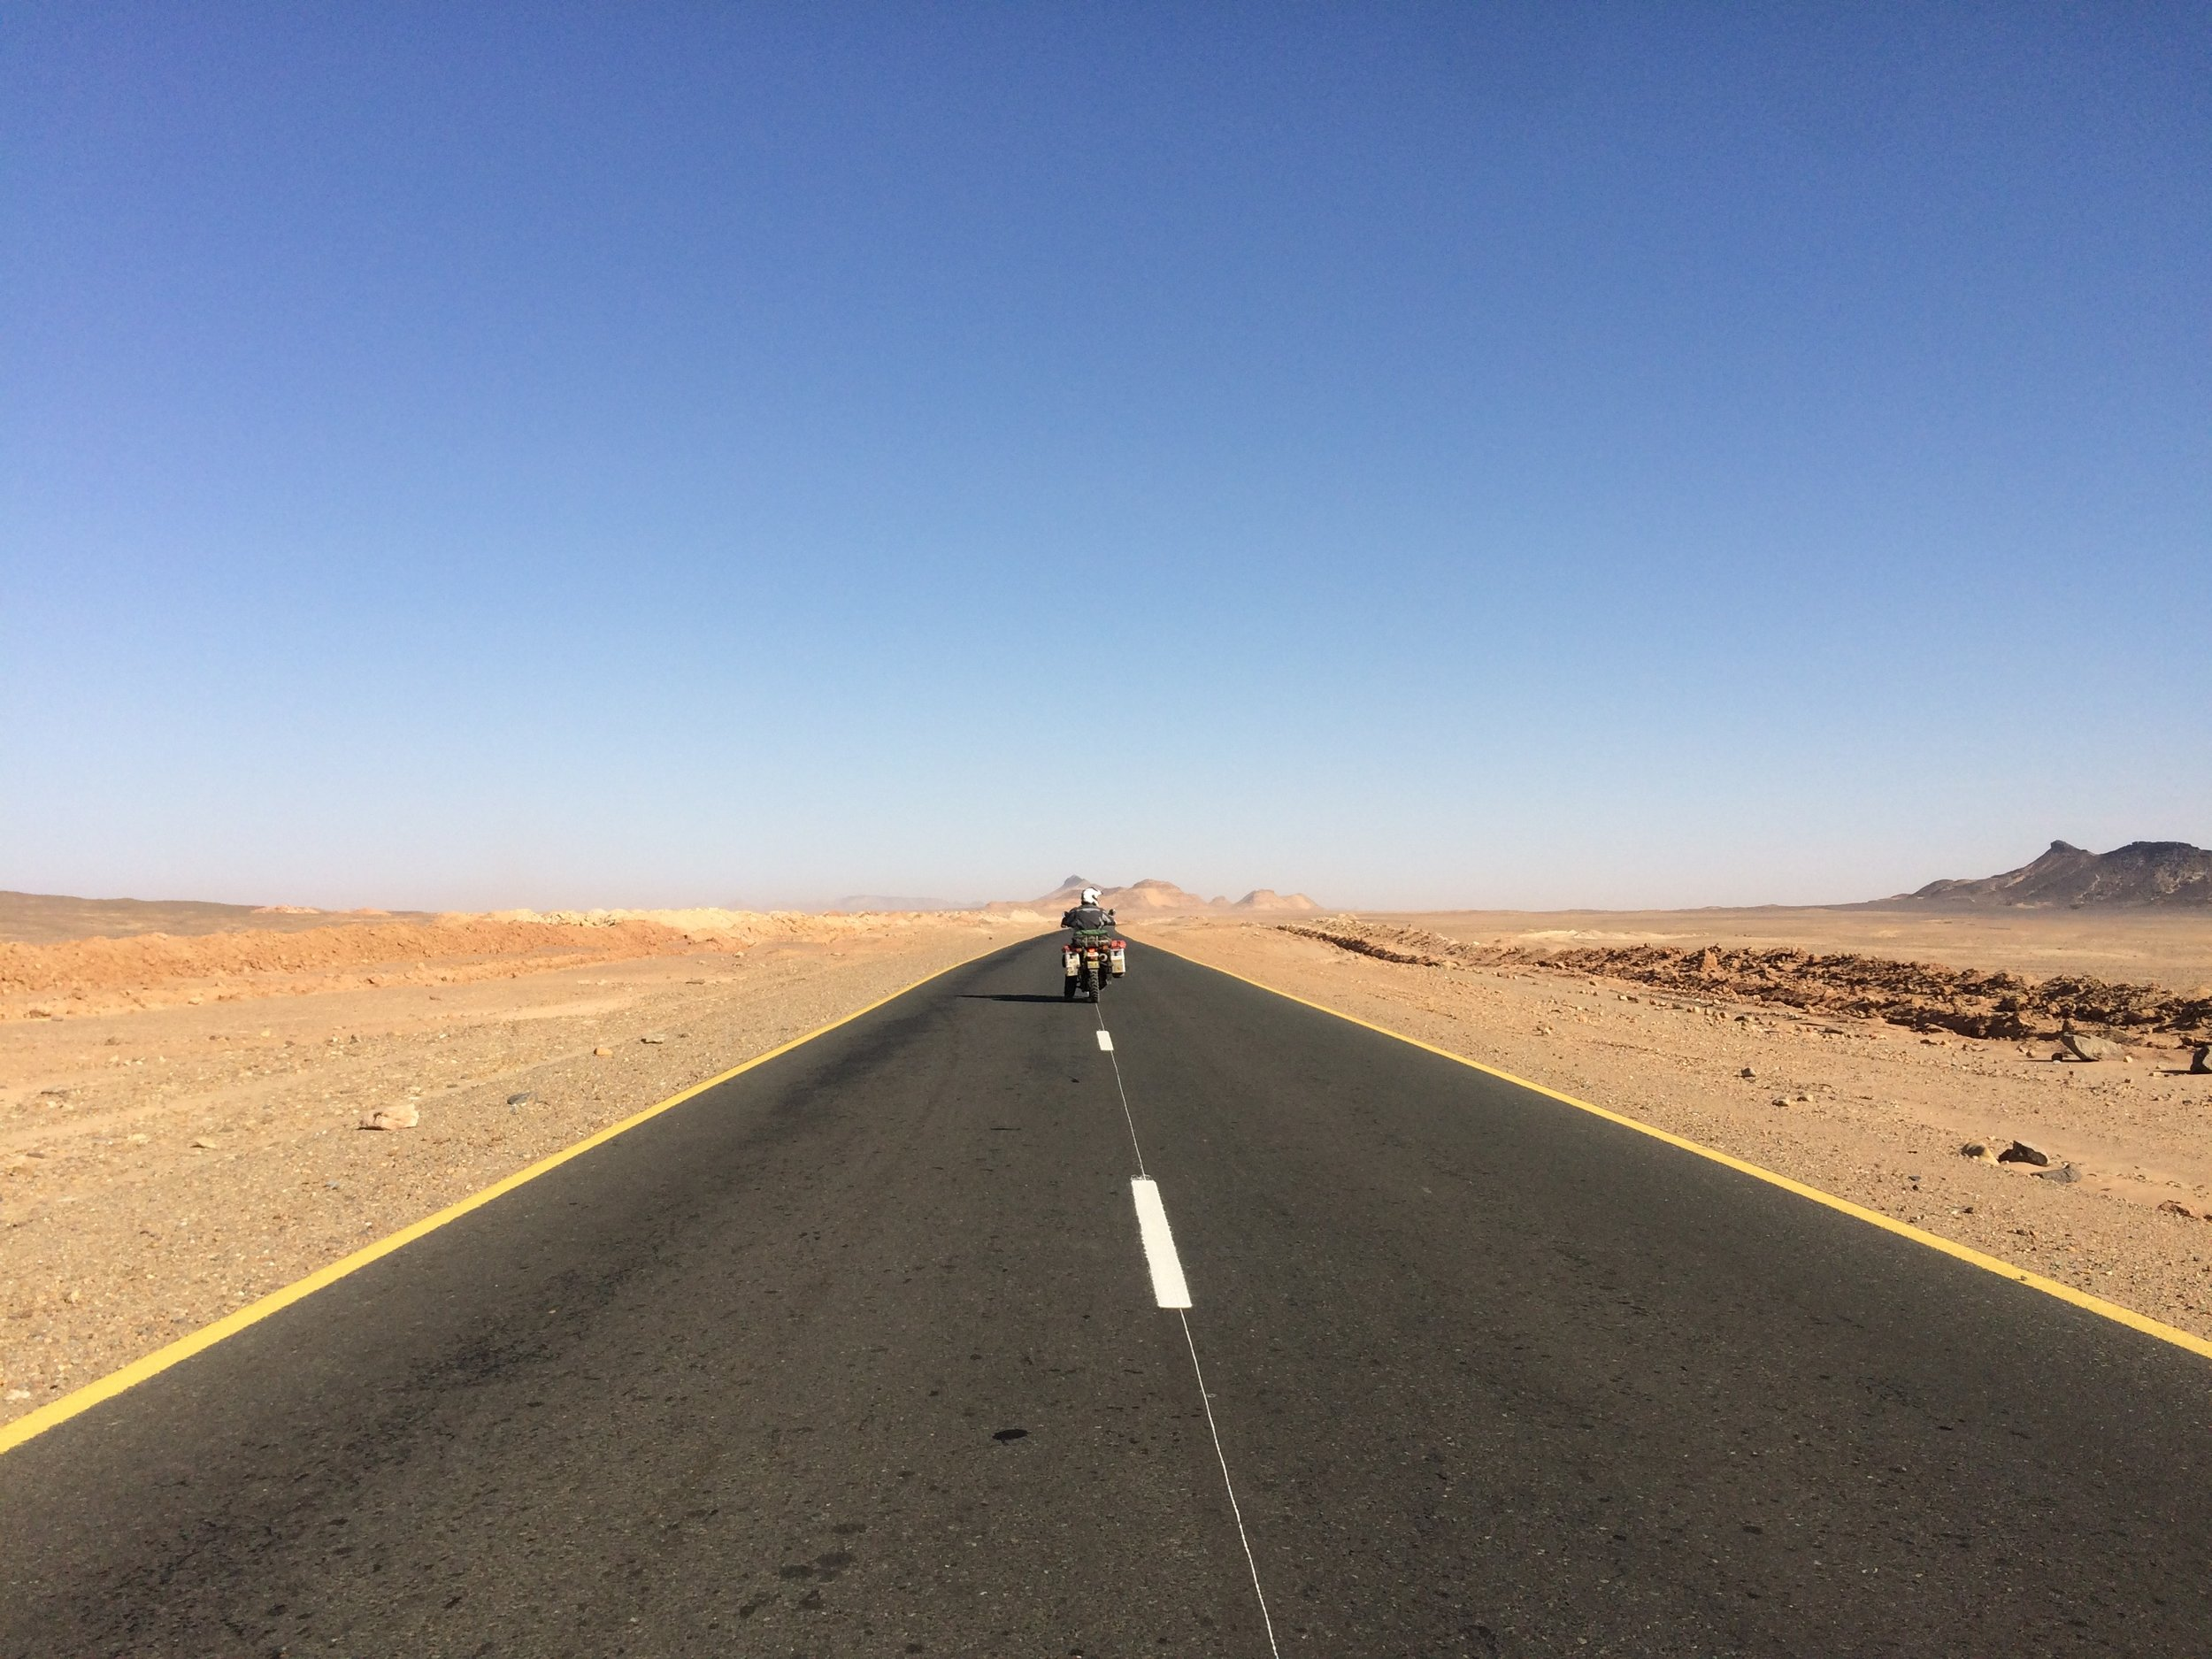 It starts off as a lovely day for riding through the Sahara Desert.